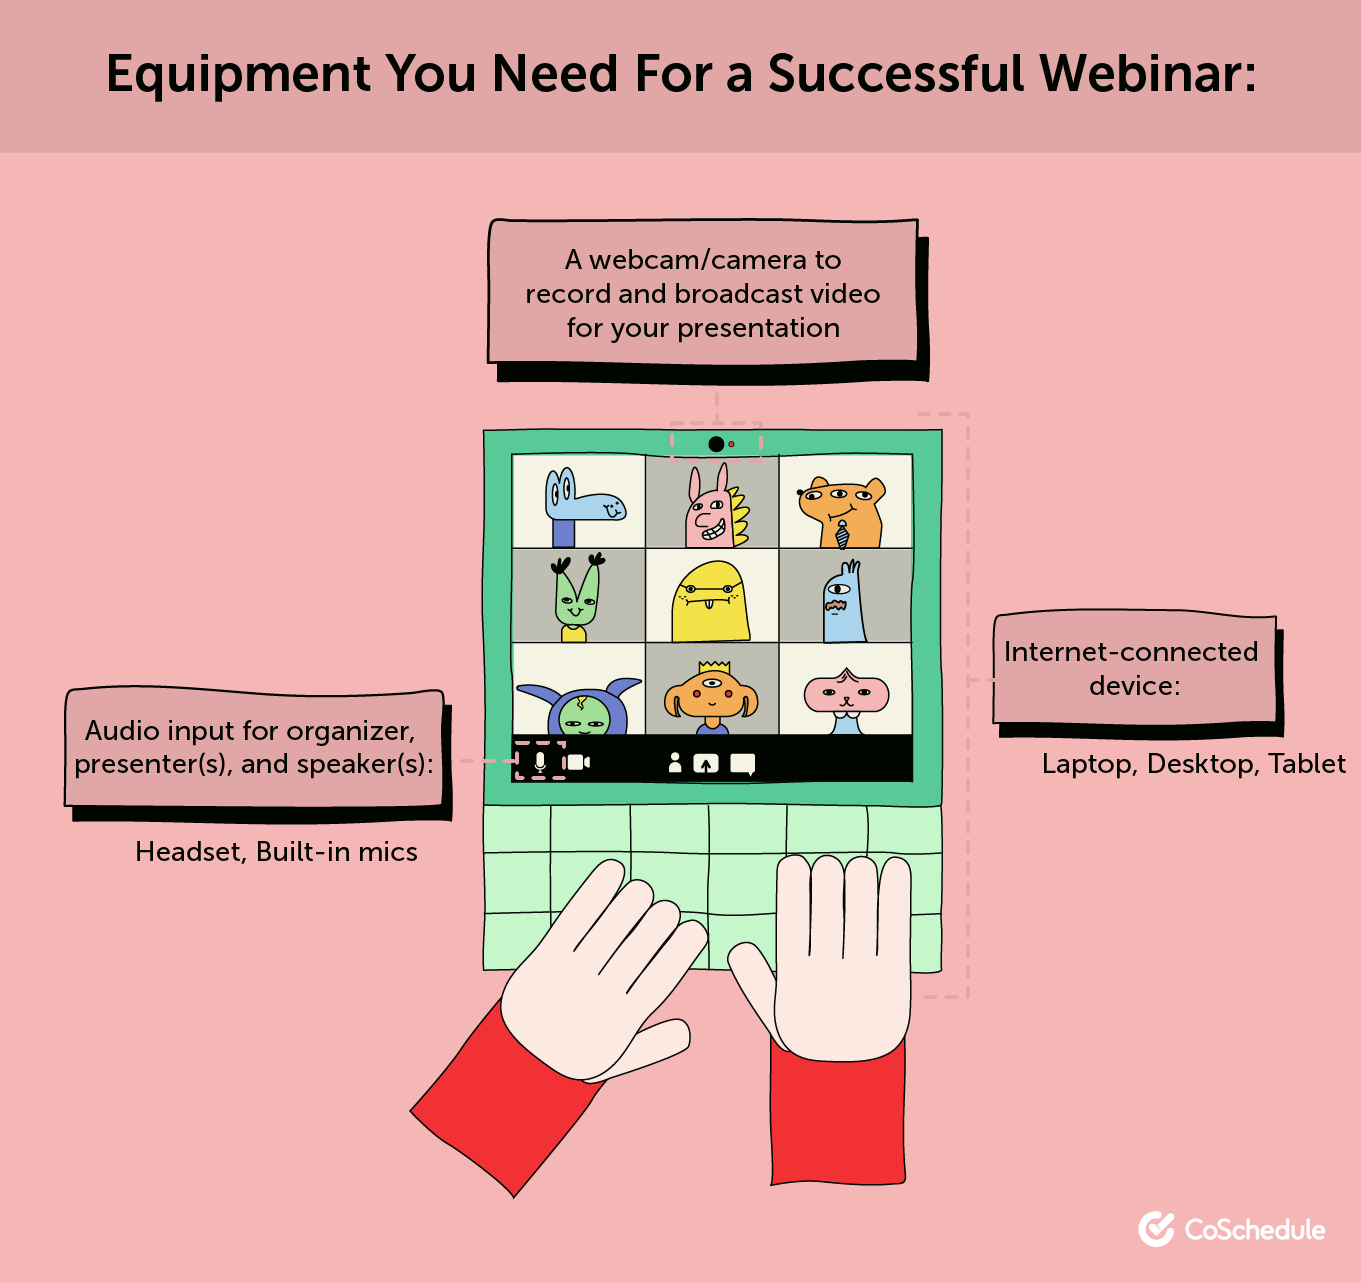 Equipment you need for a successful webinar